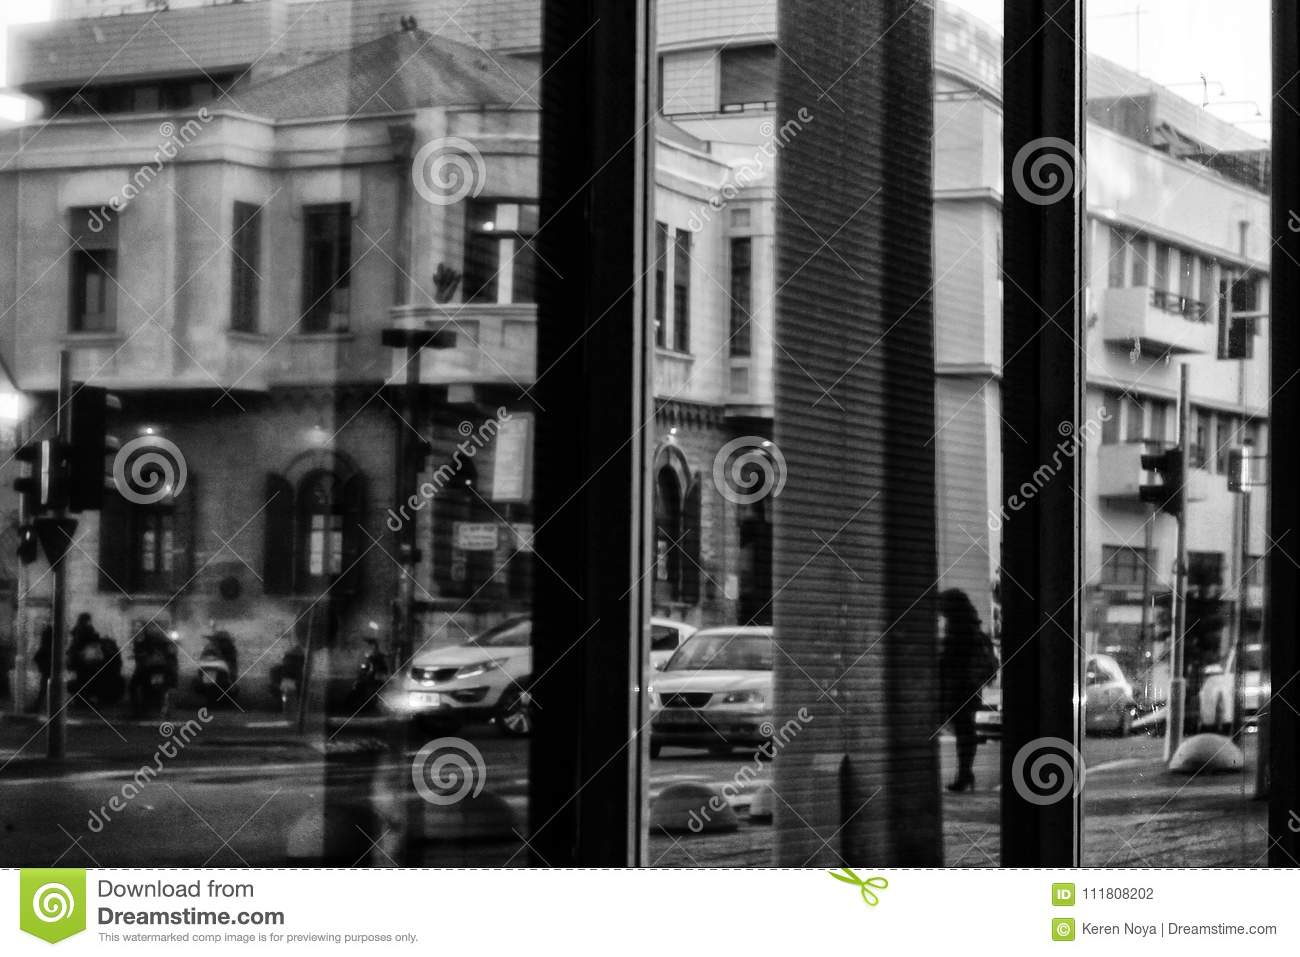 A black and white conceptual urban pattern stock photo image of